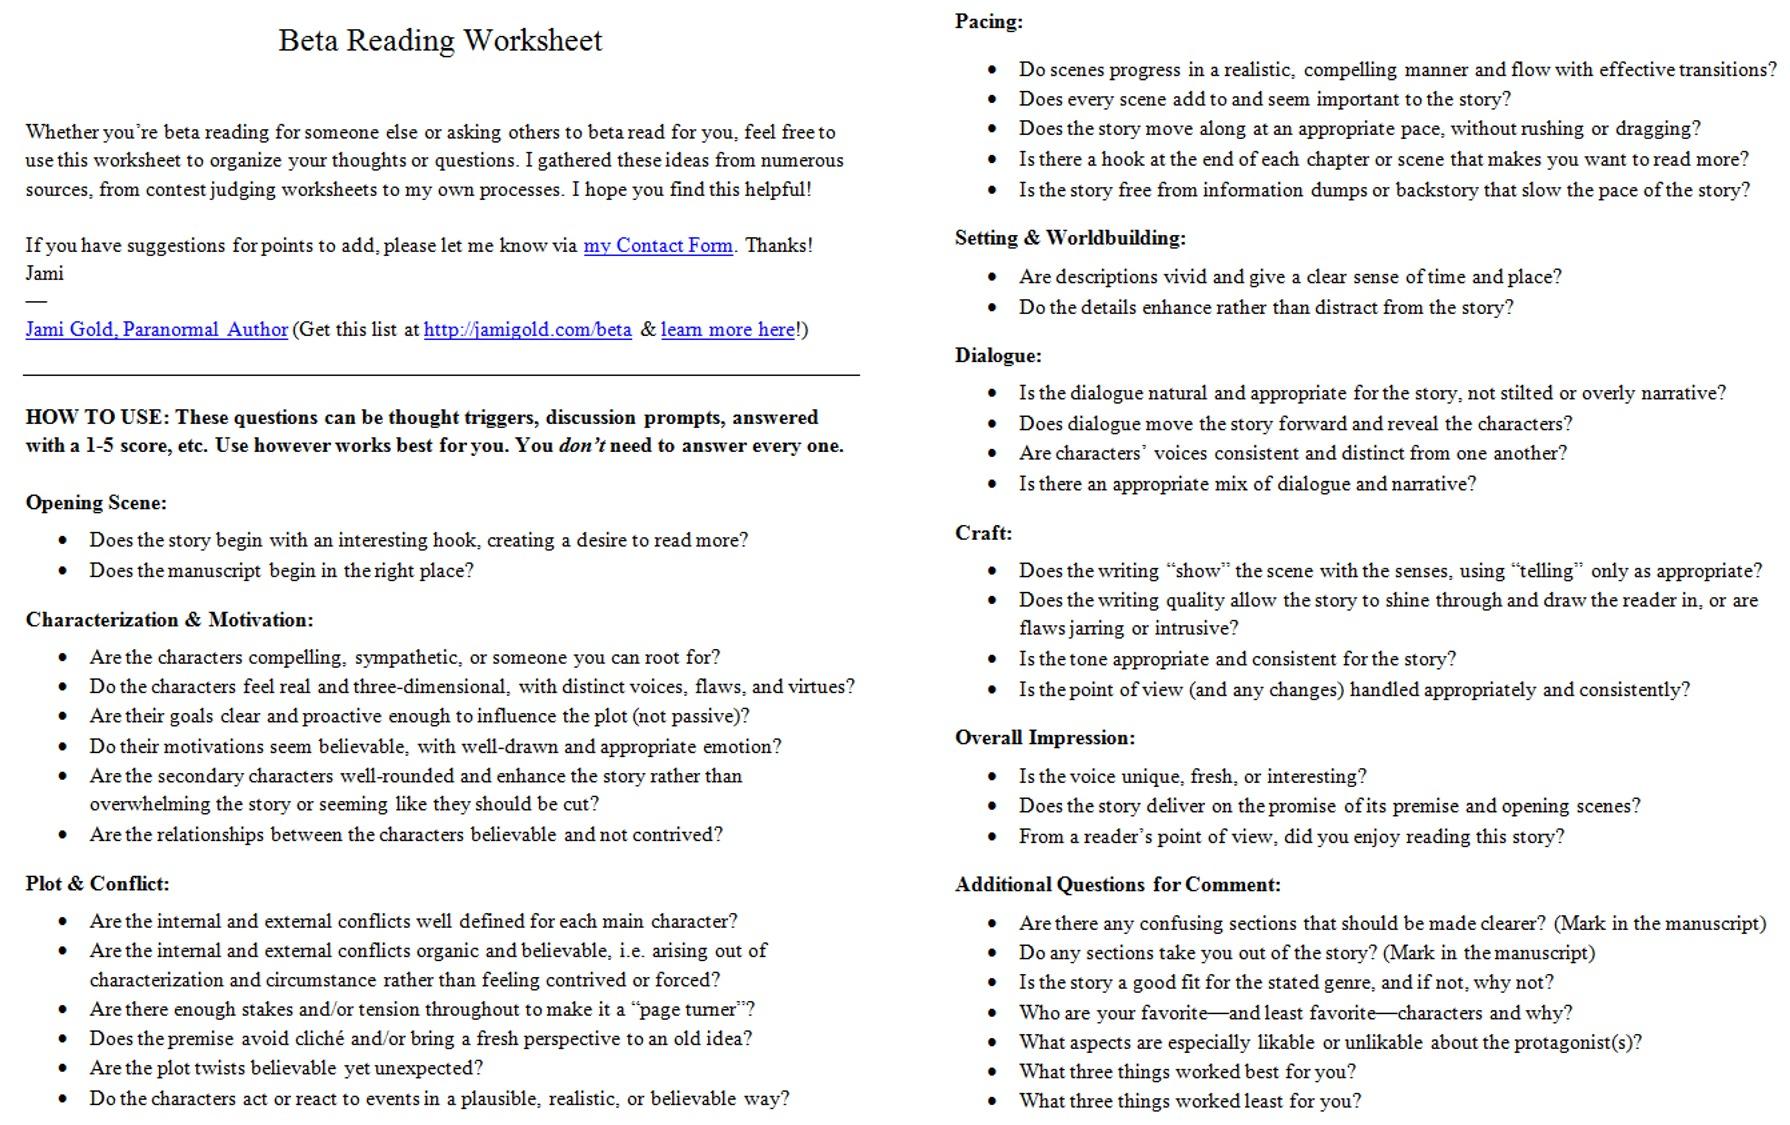 Weirdmailus  Pretty Worksheets For Writers  Jami Gold Paranormal Author With Engaging Screen Shot Of The Twopage Beta Reading Worksheet With Alluring Teaching Months Of The Year Worksheets Also Grammar Worksheets Year  In Addition Similar And Congruent Triangles Worksheets And Fraction Games Worksheets As Well As Collective Noun Worksheets For Grade  Additionally English Noun Worksheets From Jamigoldcom With Weirdmailus  Engaging Worksheets For Writers  Jami Gold Paranormal Author With Alluring Screen Shot Of The Twopage Beta Reading Worksheet And Pretty Teaching Months Of The Year Worksheets Also Grammar Worksheets Year  In Addition Similar And Congruent Triangles Worksheets From Jamigoldcom